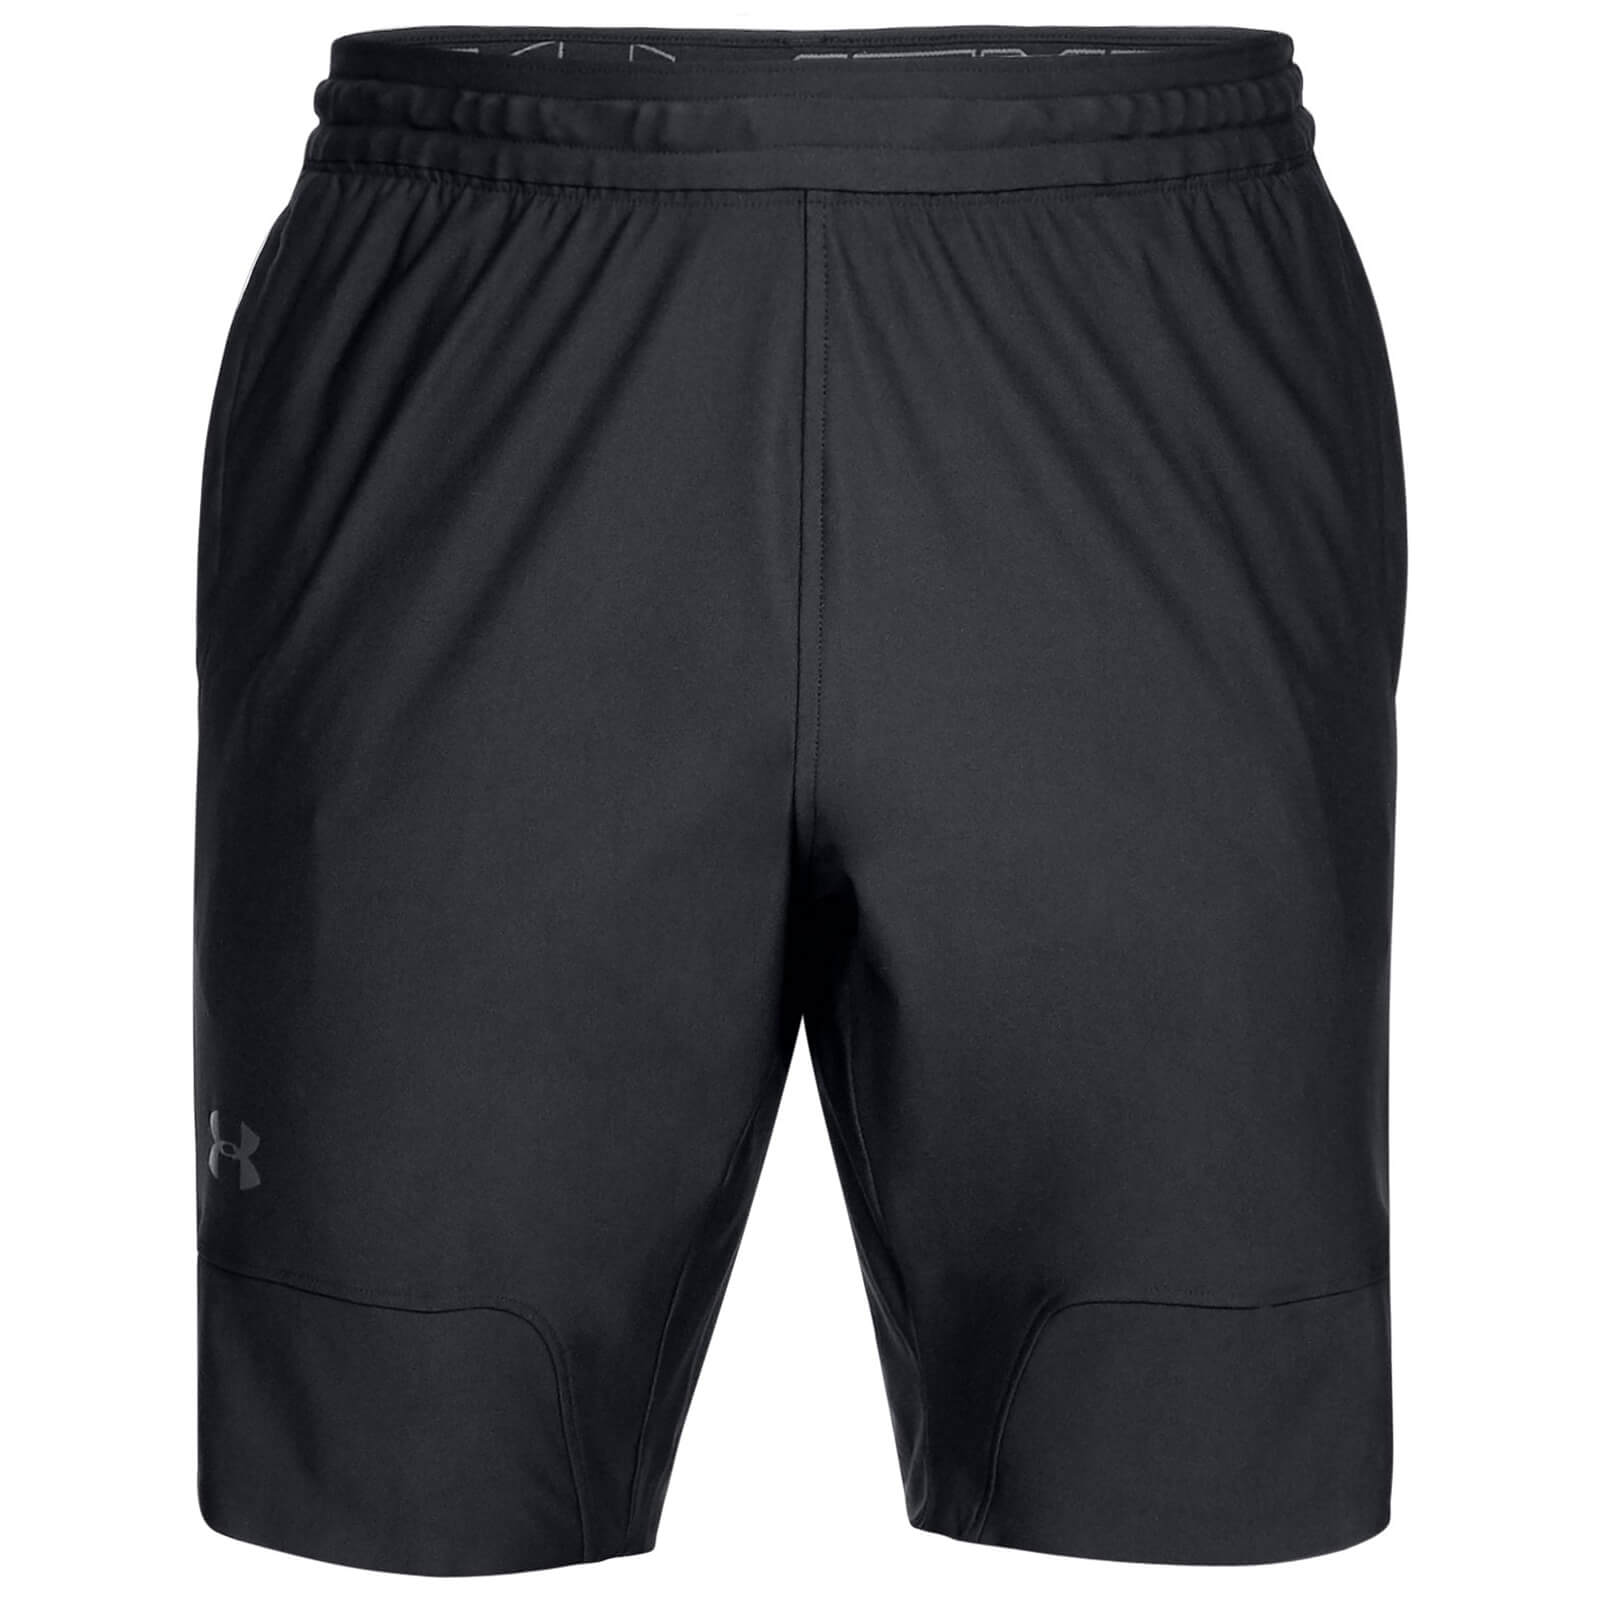 0a4805c6c Under Armour Men's Threadborne Vanish FTD Shorts - Black | ProBikeKit.com